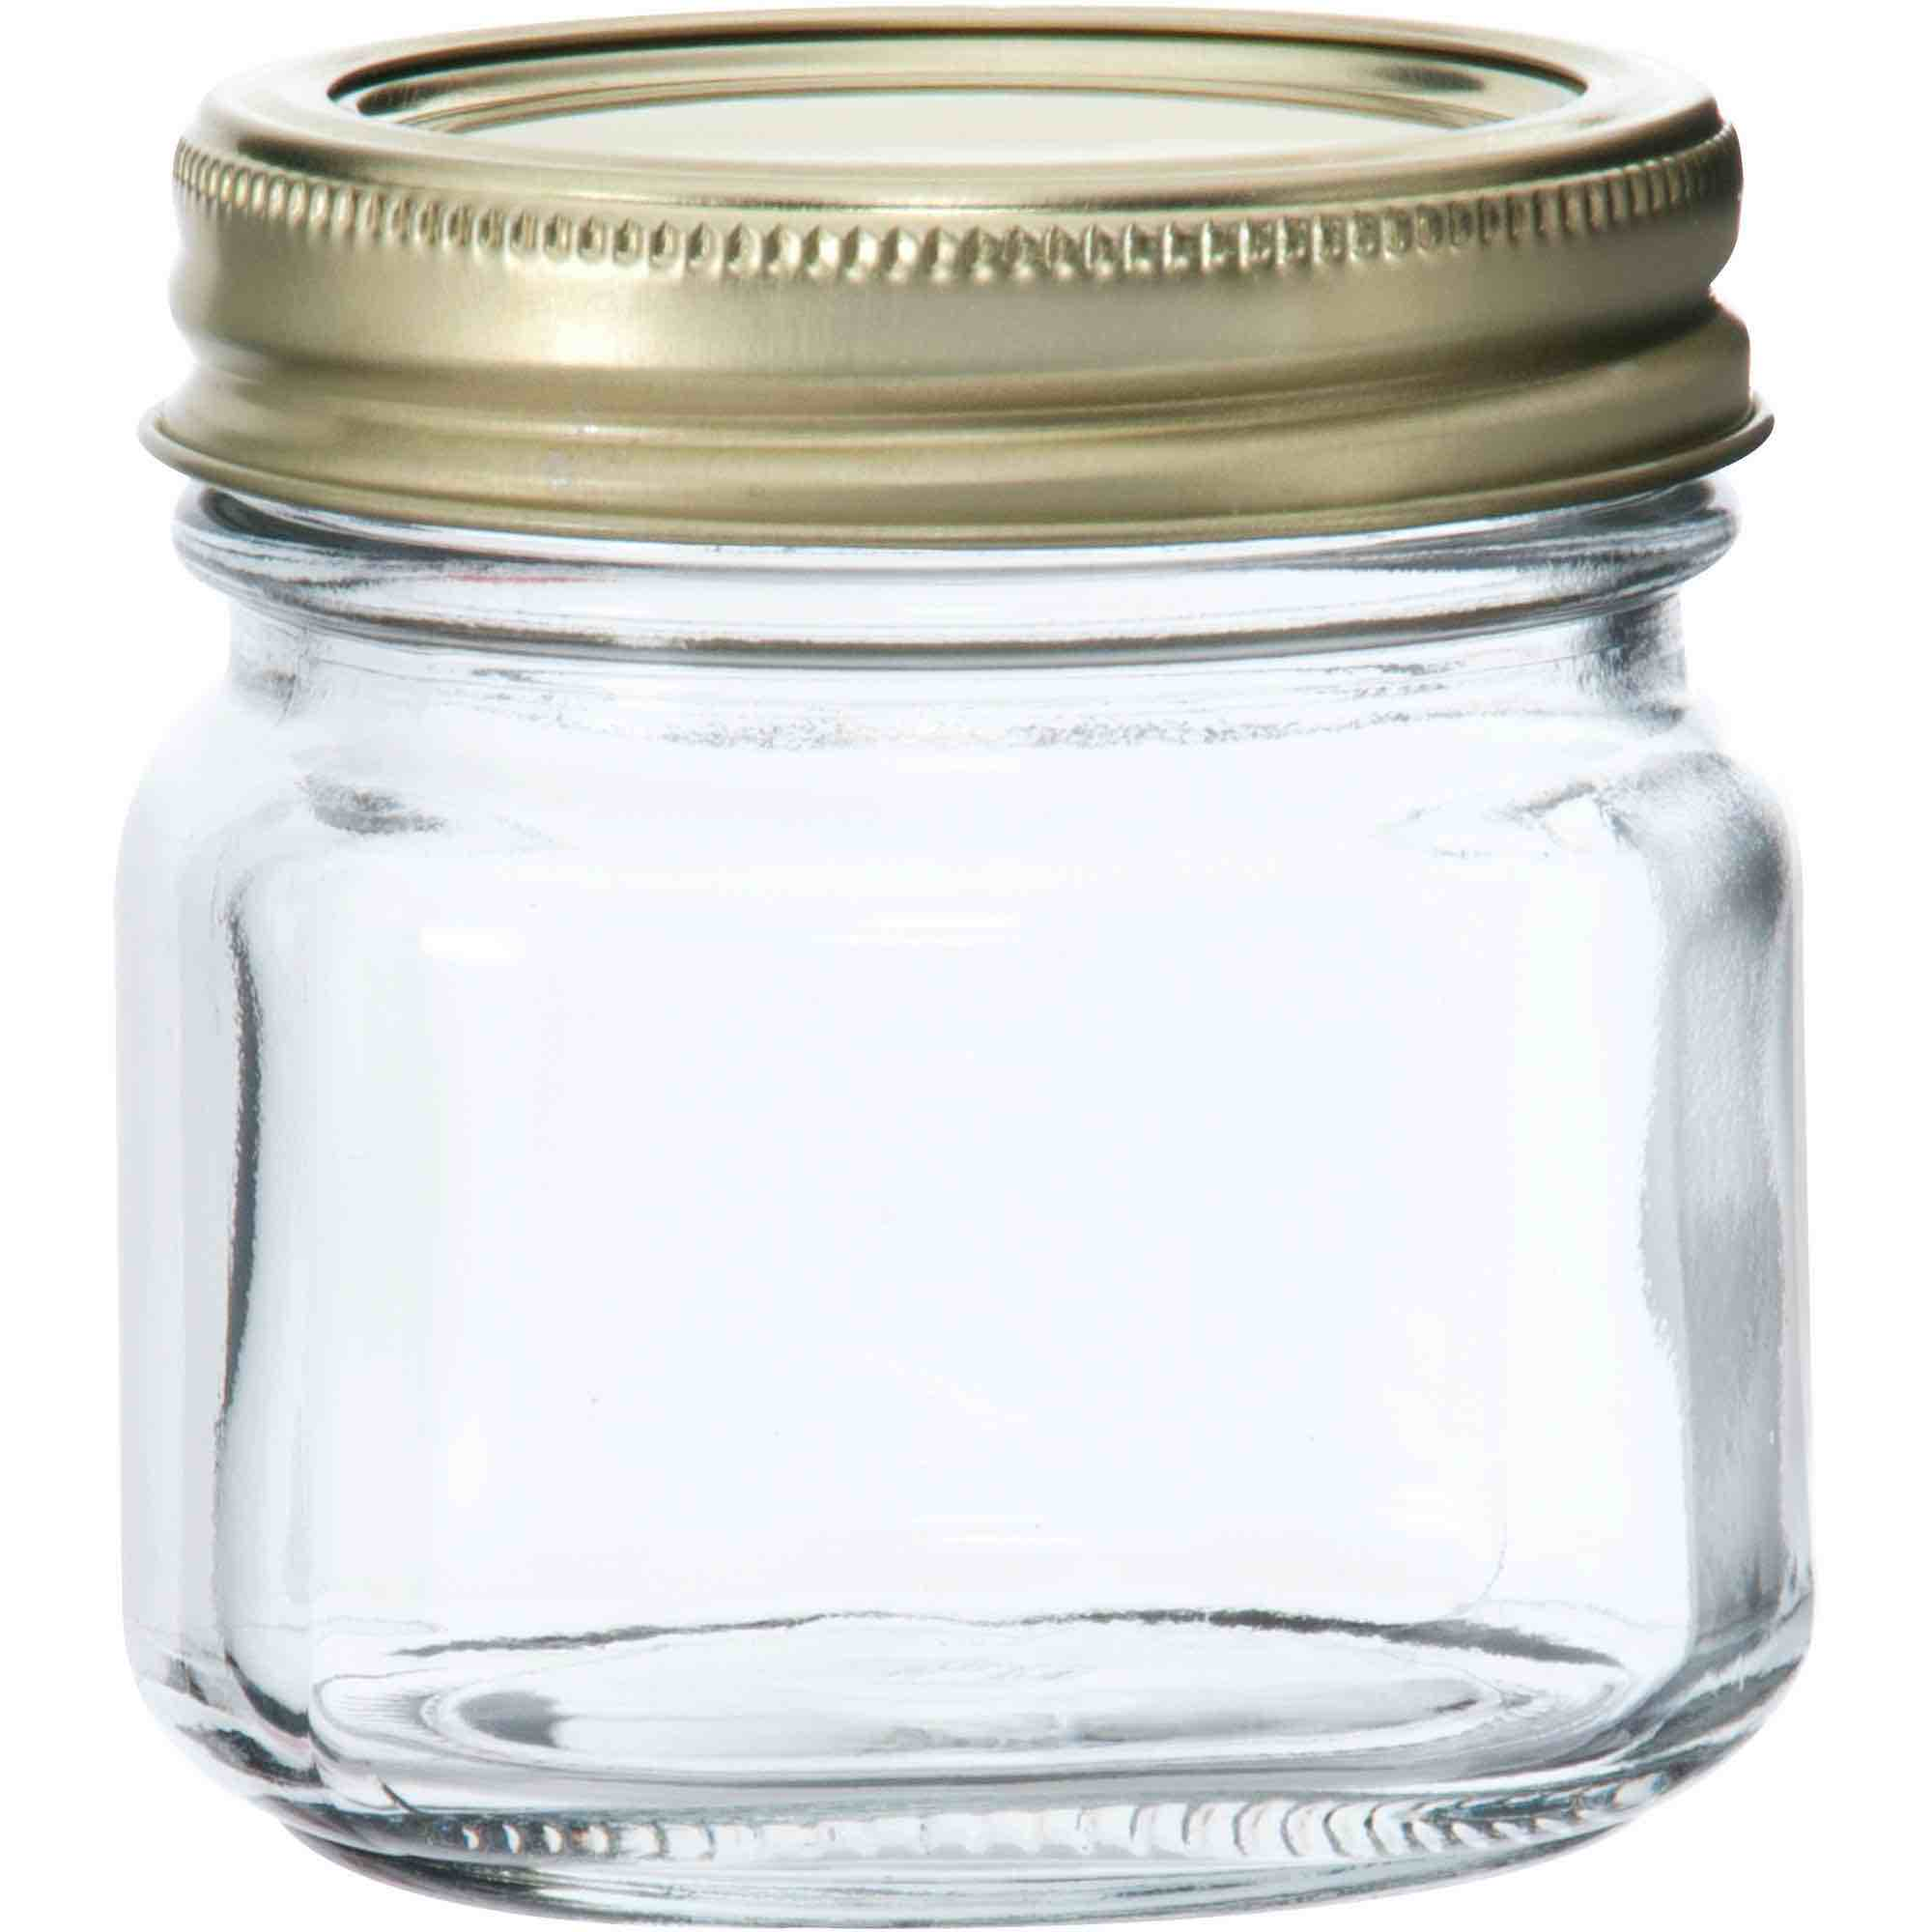 Half-pint Glass Canning Jar Set